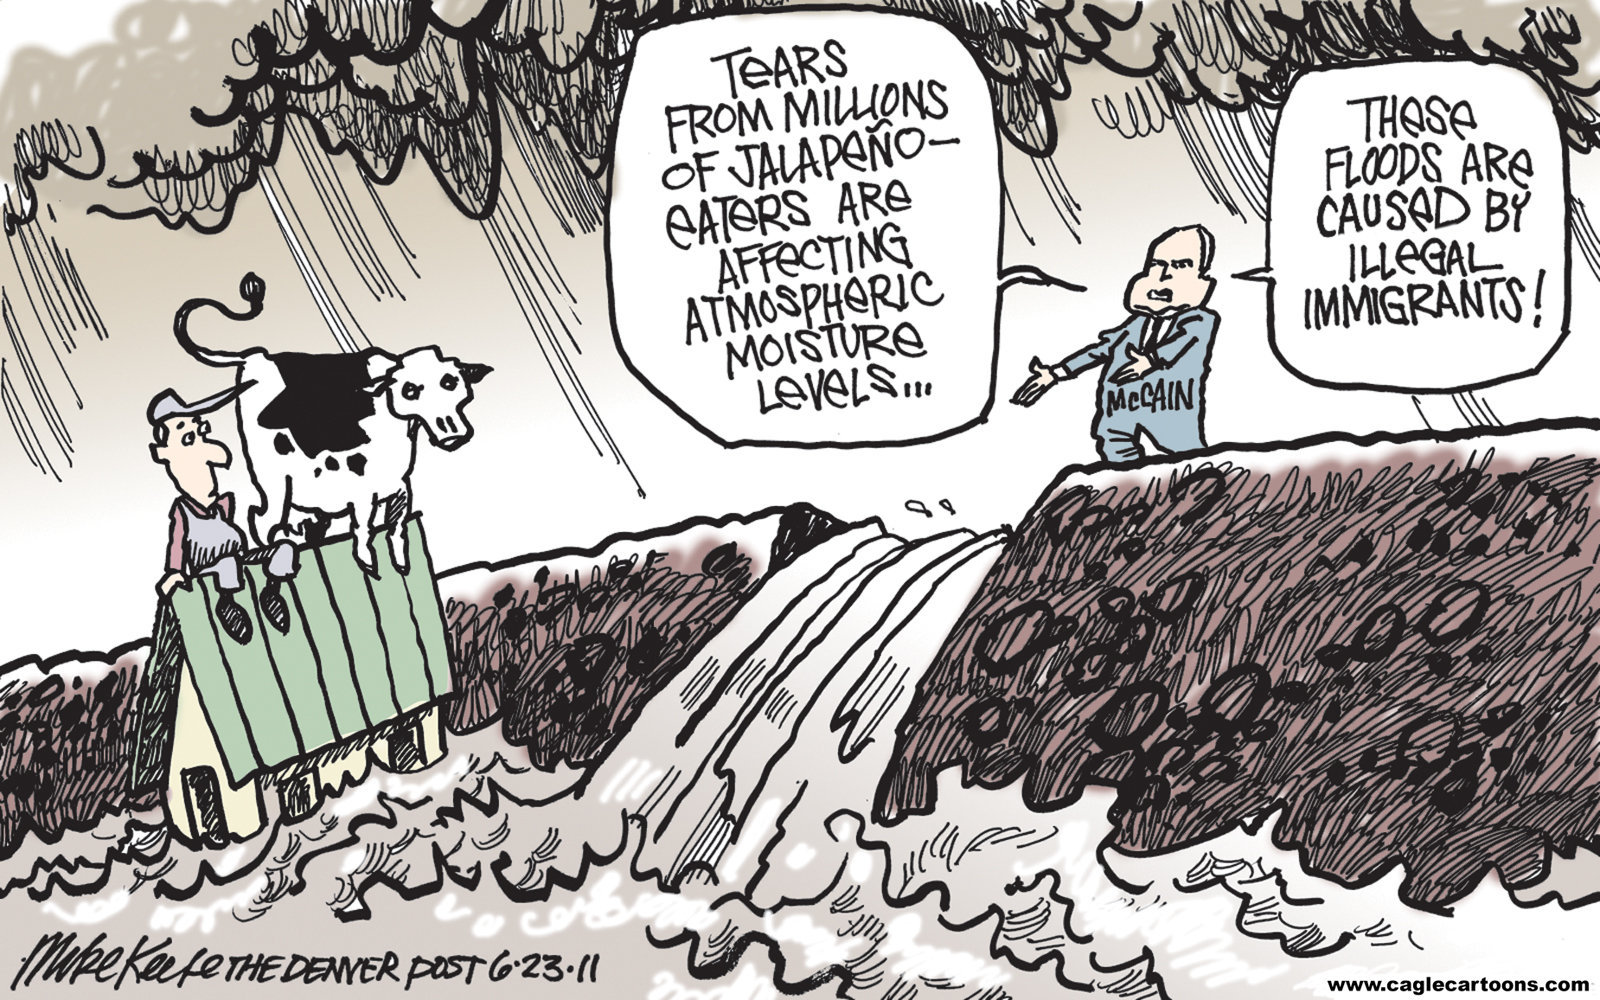 Editorial Cartoons Topics Of The Day